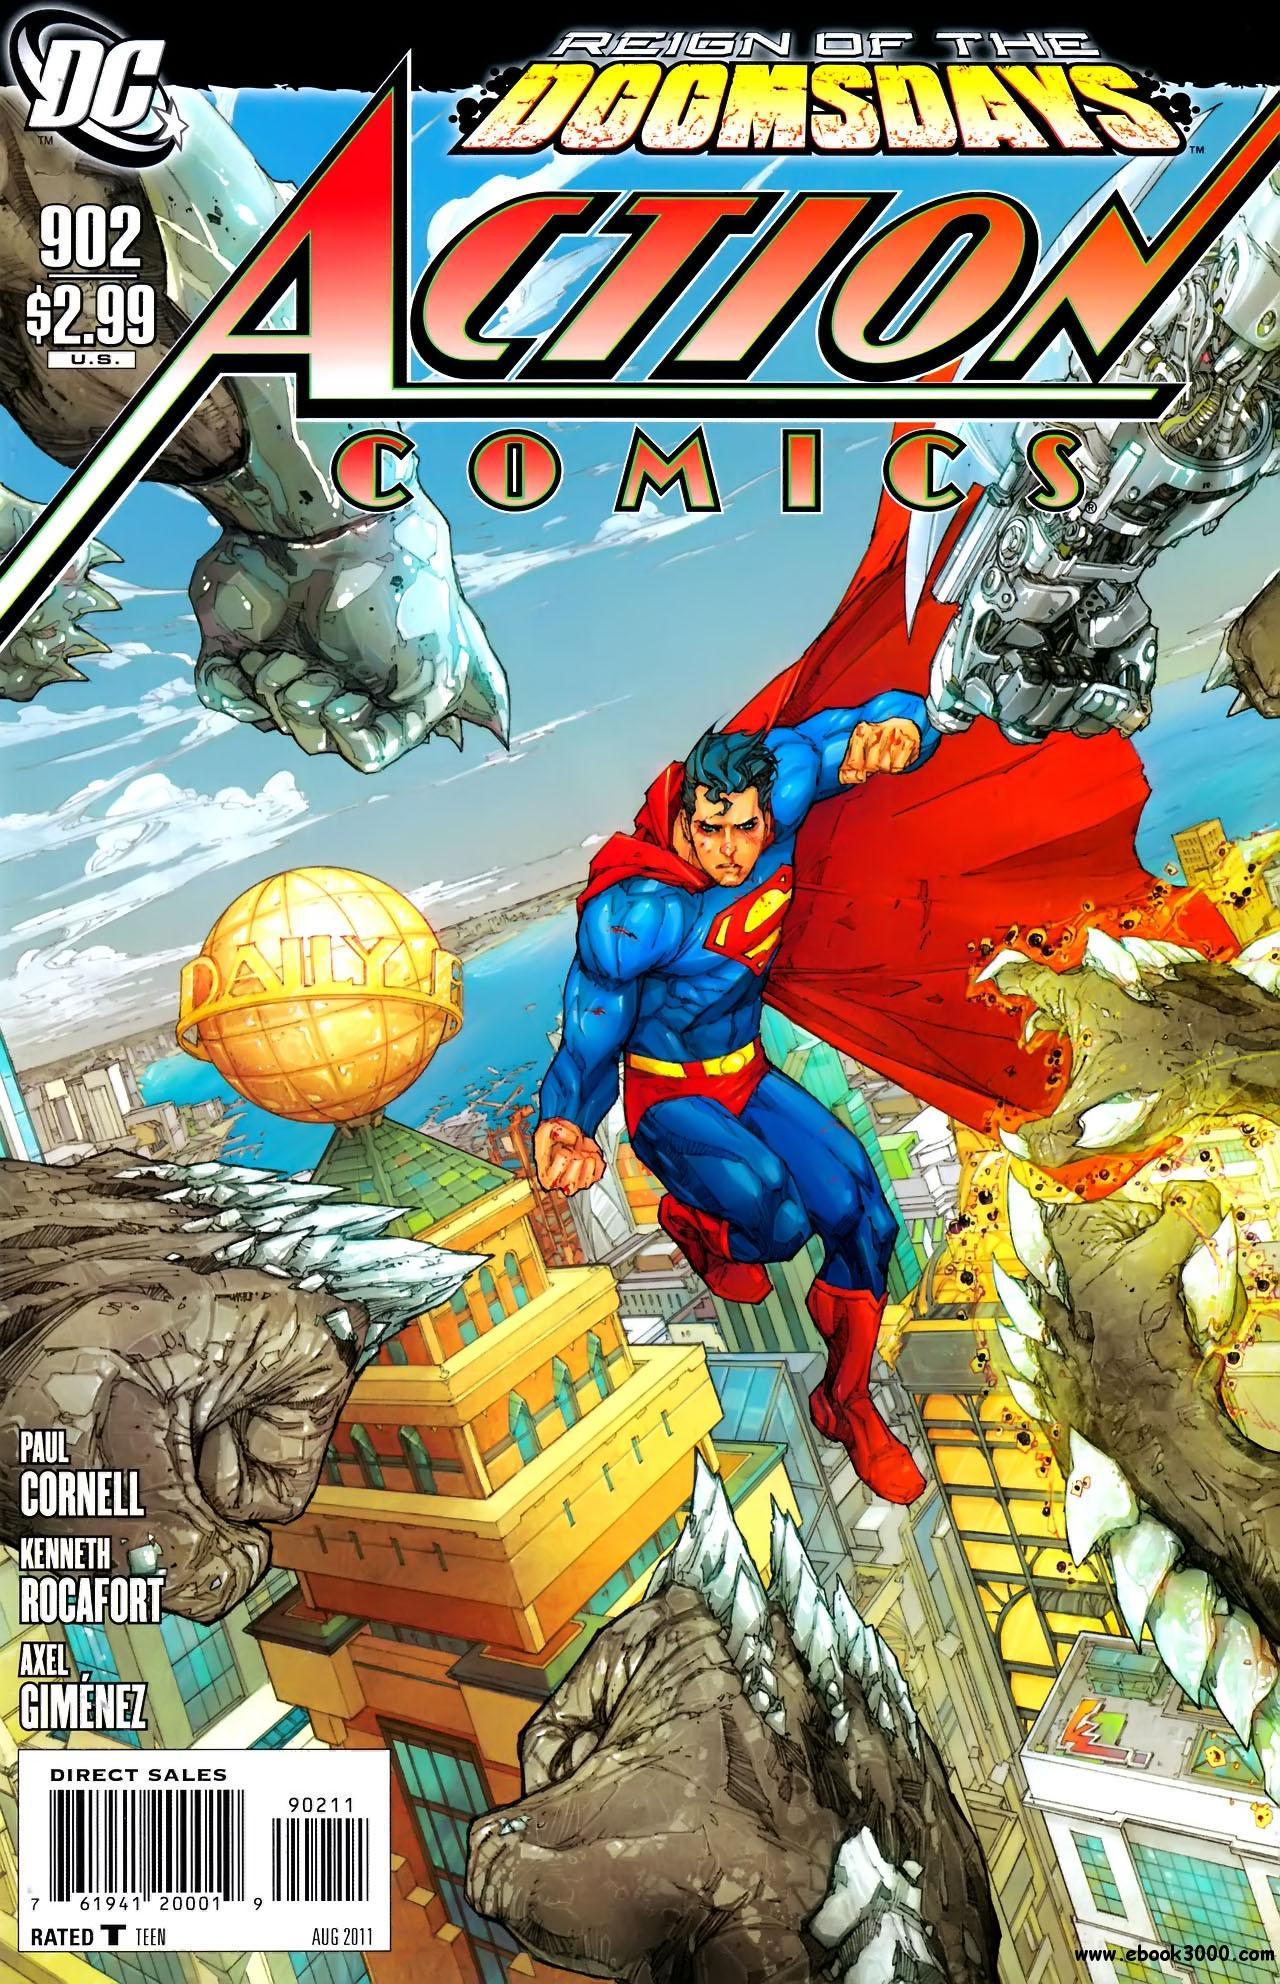 Action Comics #902 (2011) free download